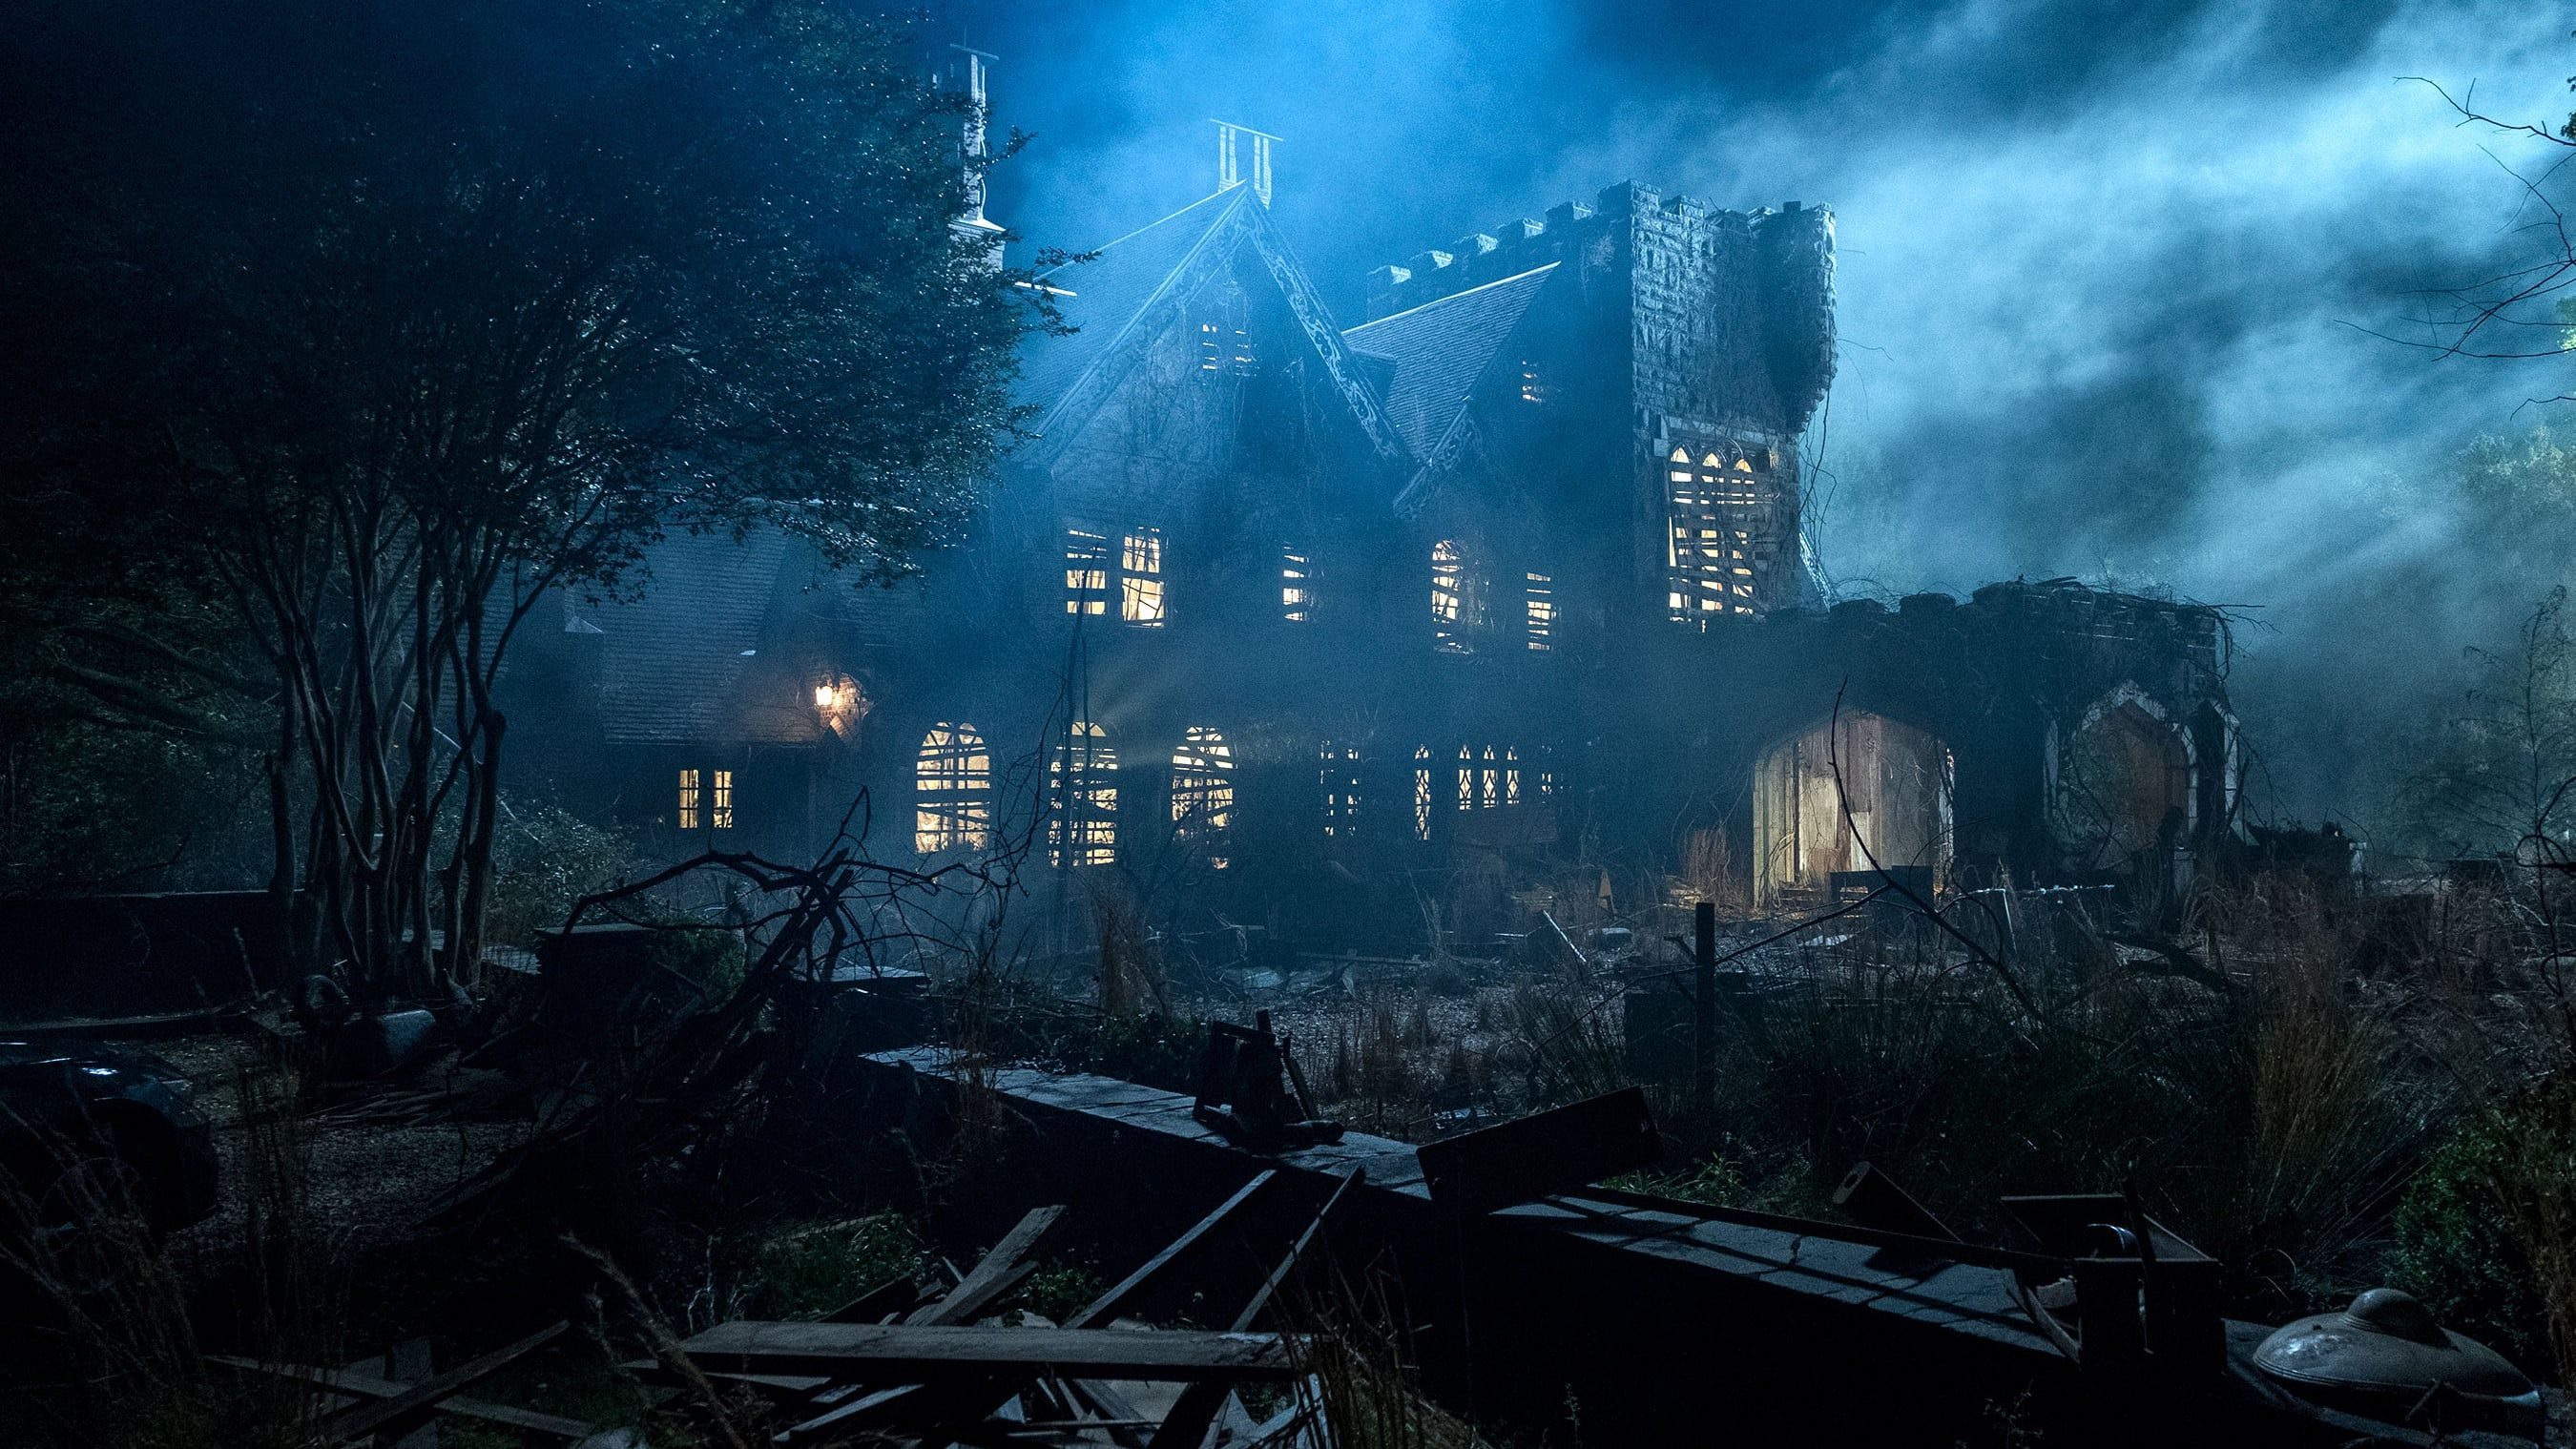 The Haunting Of Hill House House On A Hill Netflix Horror Netflix Horror Series